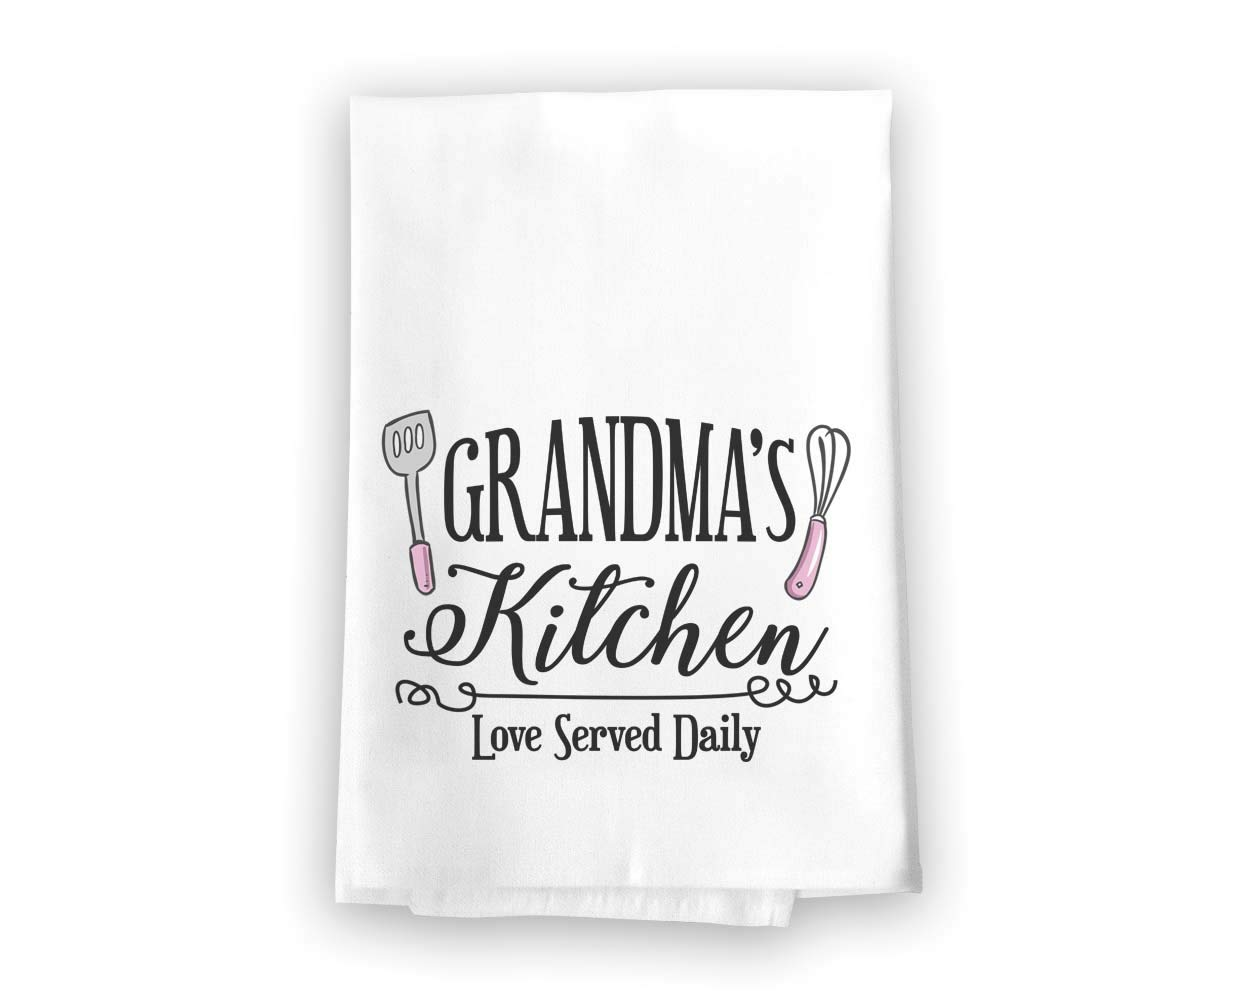 Honey Dew Gifts Grandma's Kitchen Love Served Daily Flour Sack Towel, 27 x 27 Inches, 100% Cotton, Highly Absorbent, Multi-Purpose Kitchen Dish Towel